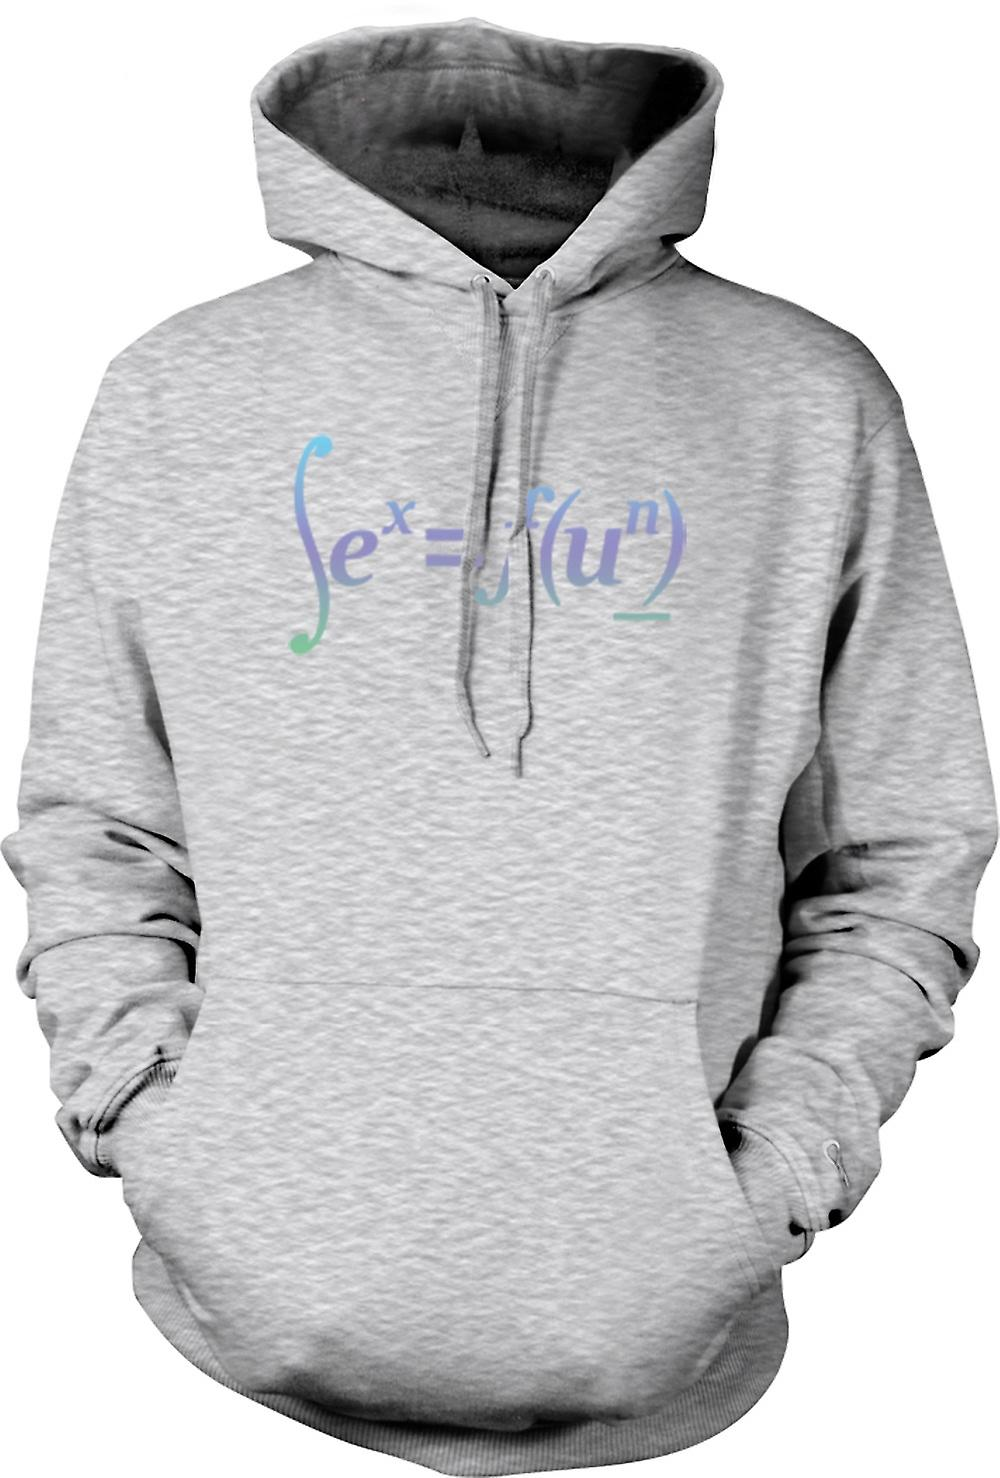 Mens Hoodie - seks = Fun - Math formule Design